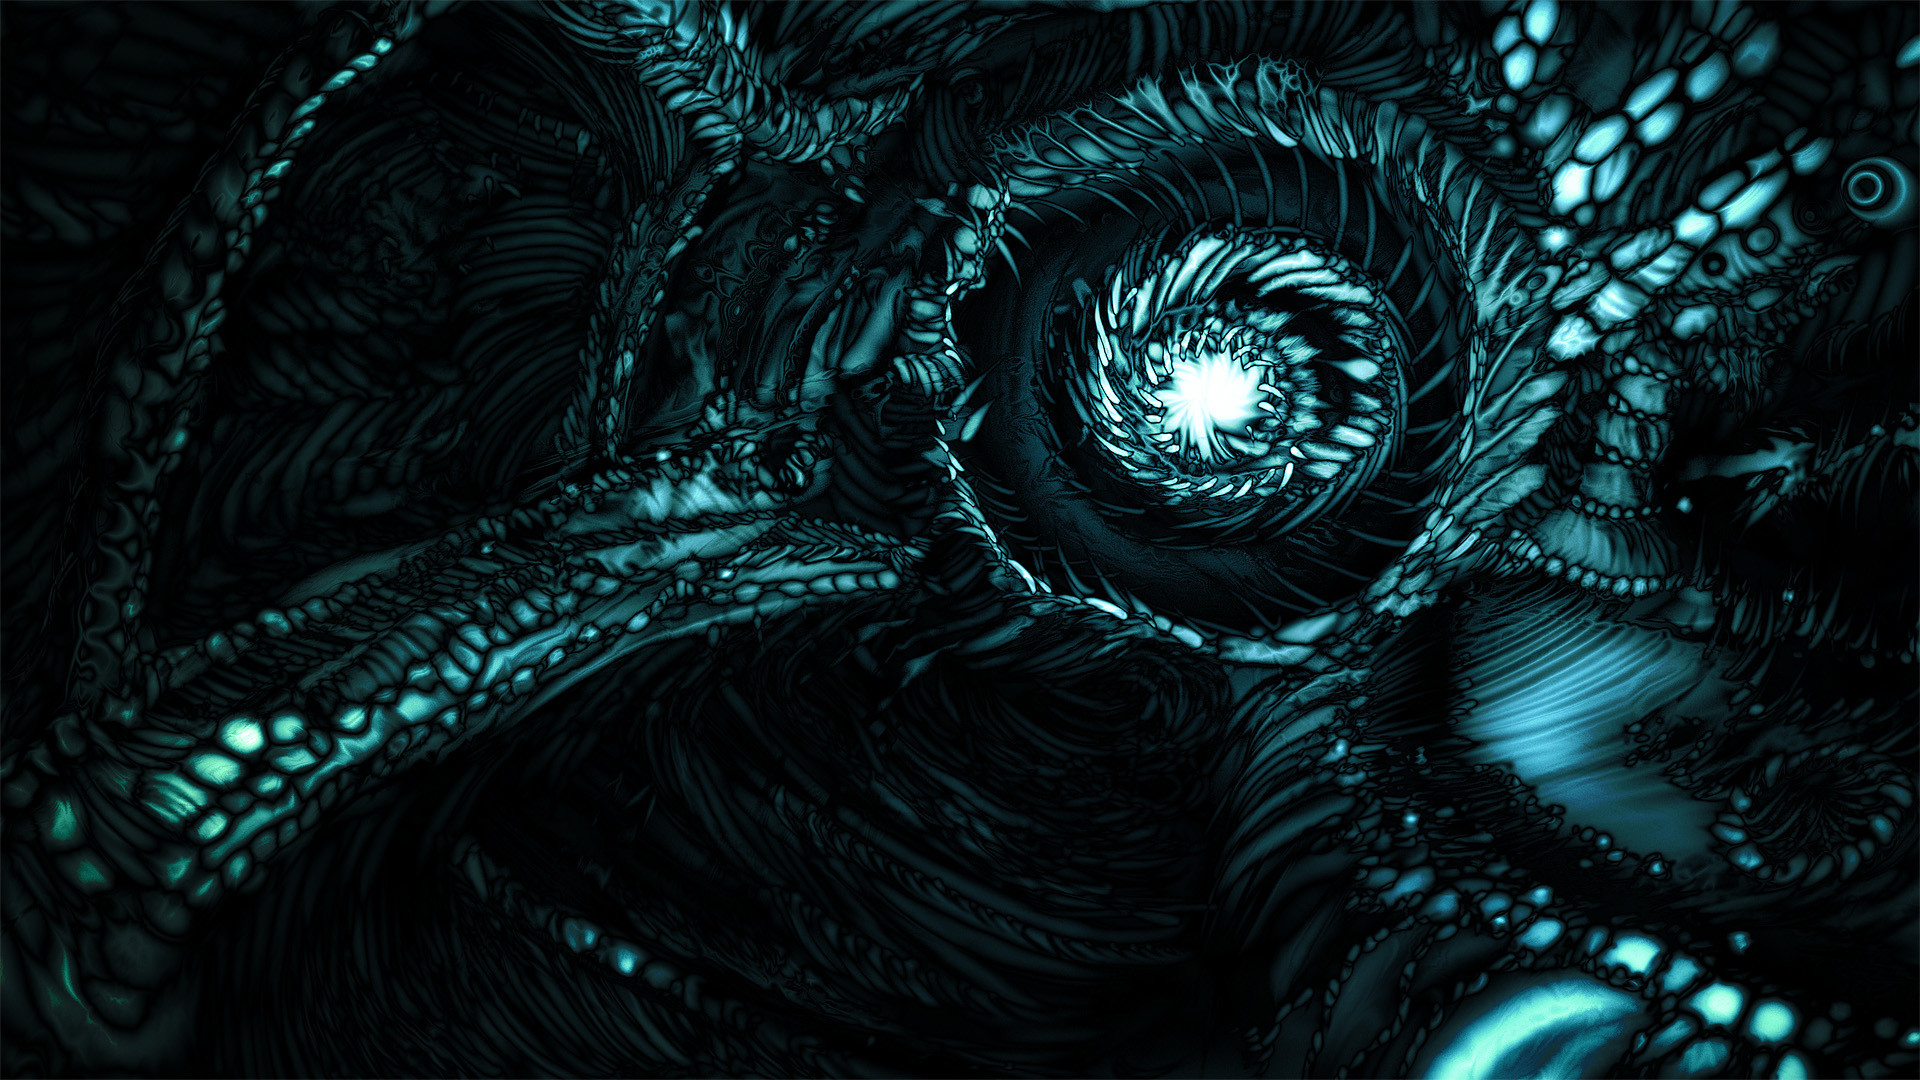 Res: 1920x1080, Collection of Awesome Hd Wallpapers on HDWallpapers